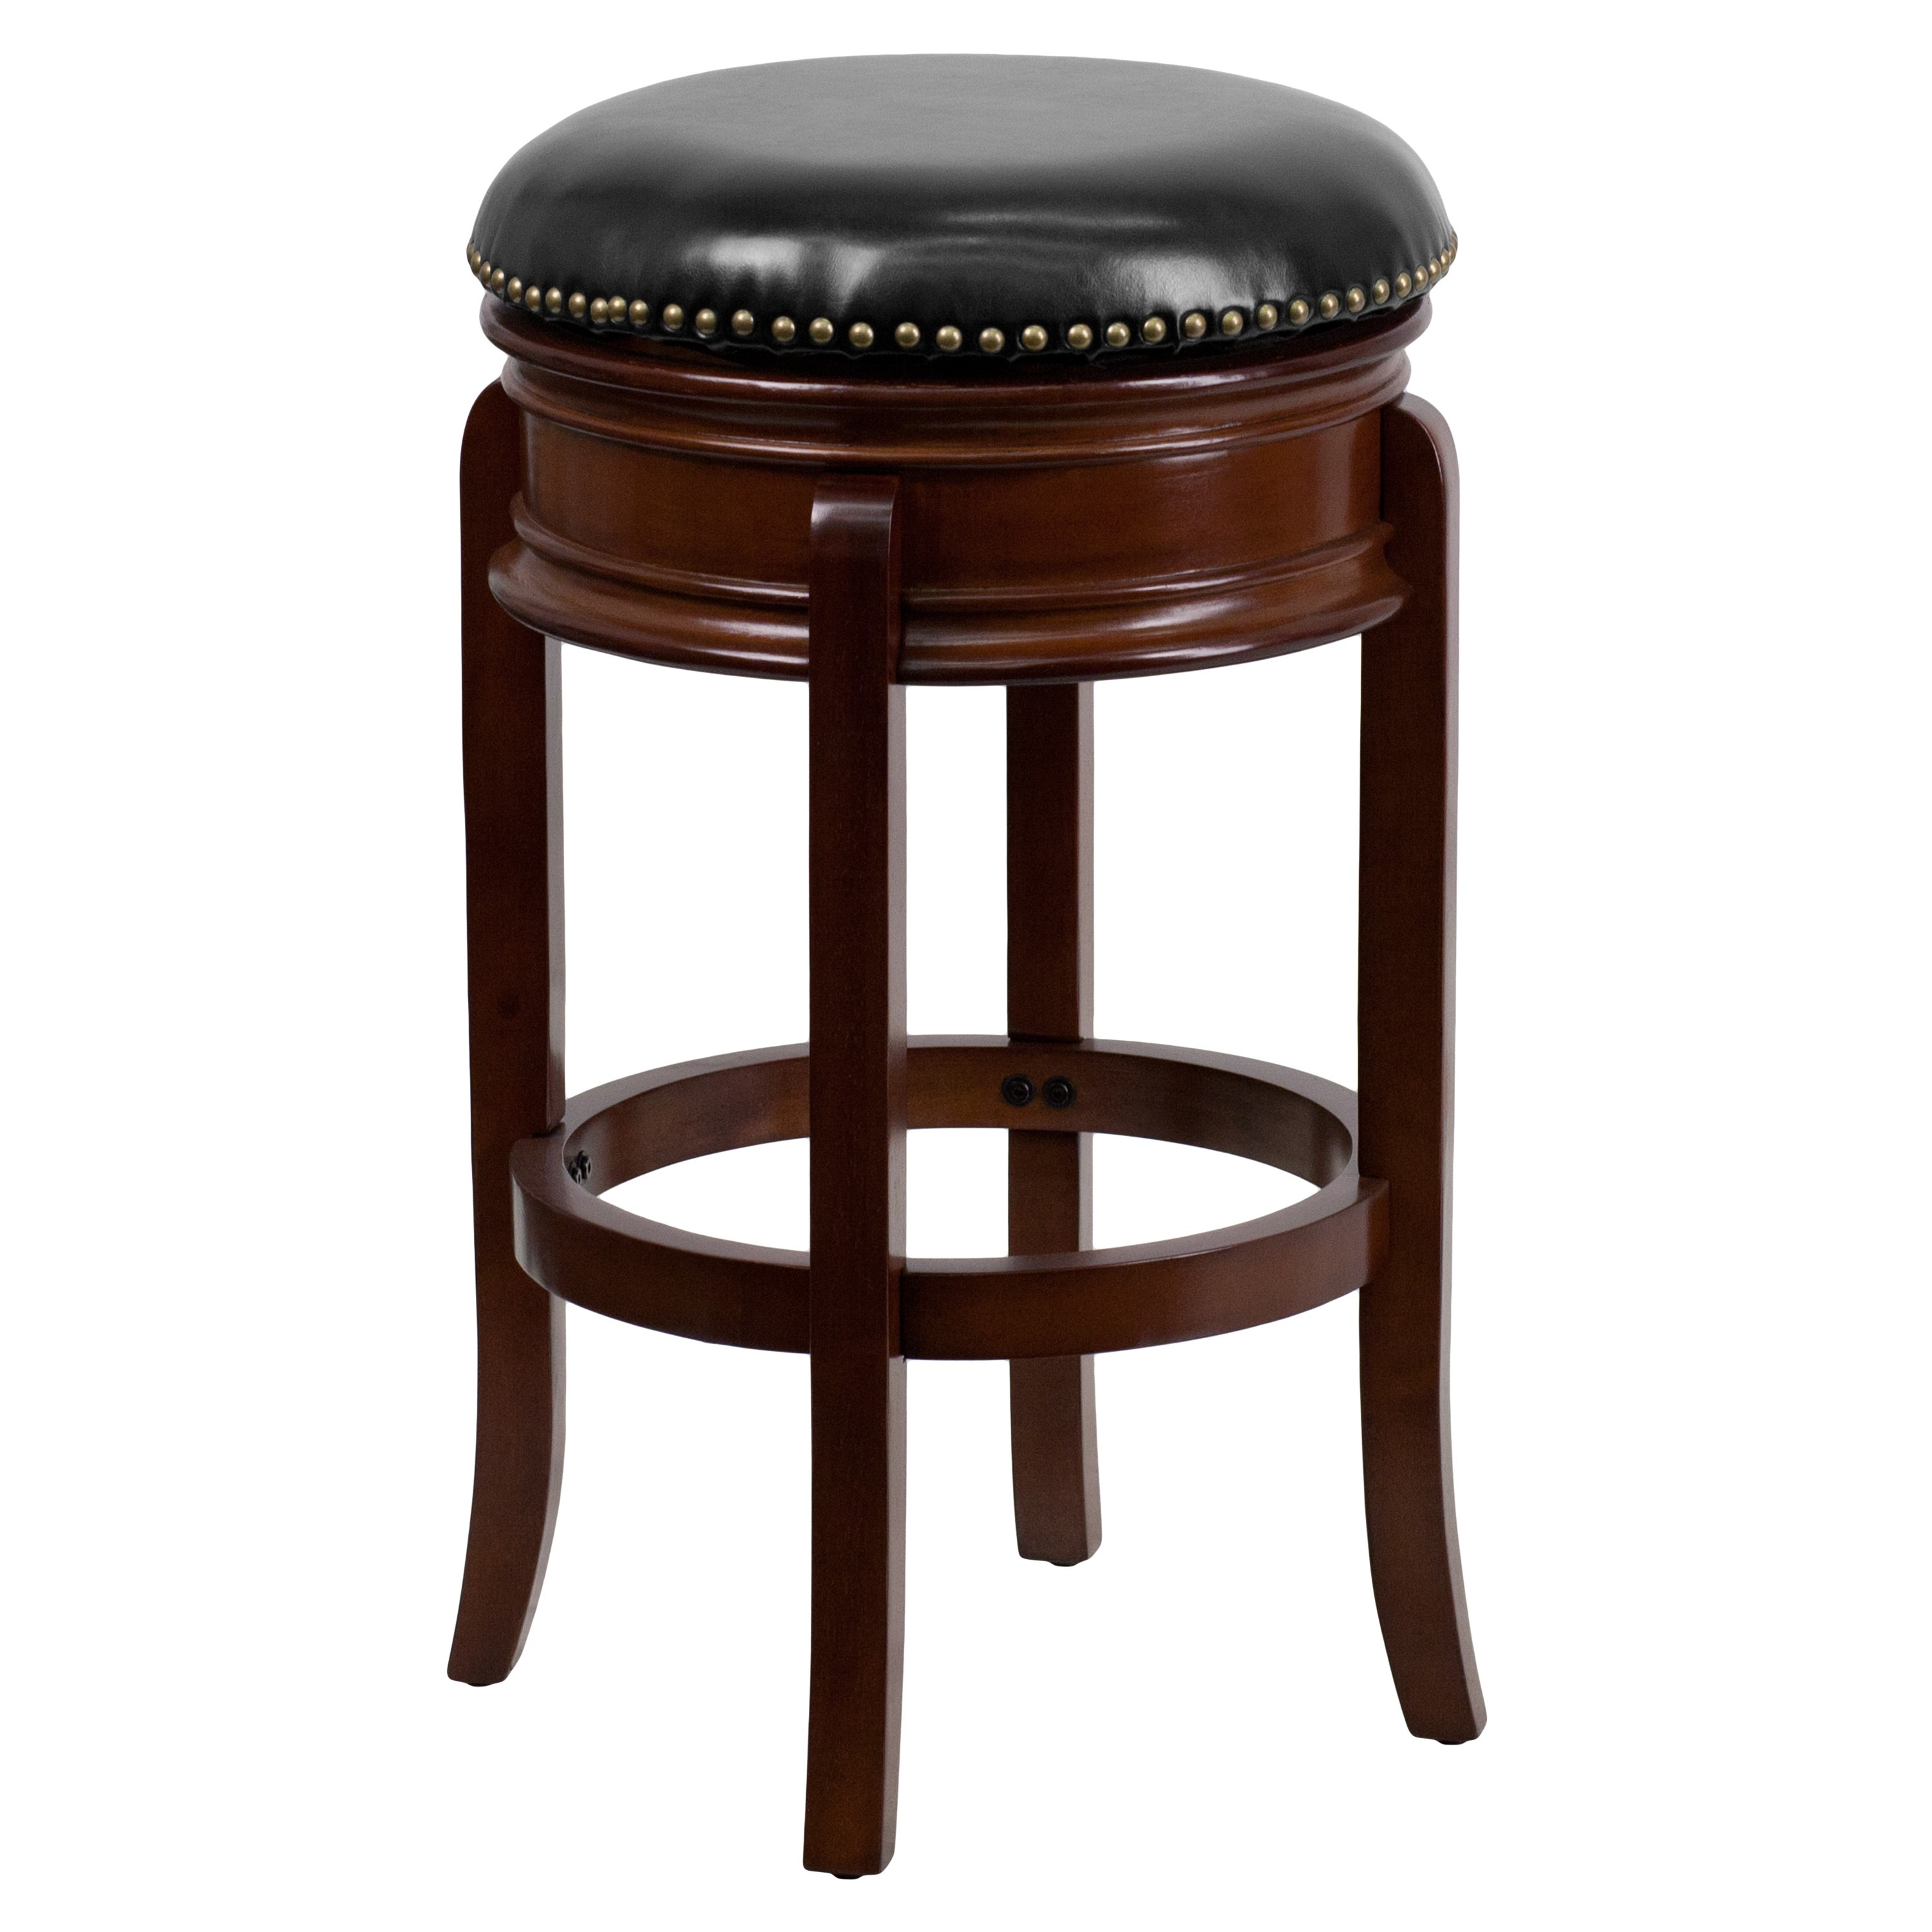 Super Flash Furniture 29 Backless Wood Bar Stool With Black Leather Swivel Seat Squirreltailoven Fun Painted Chair Ideas Images Squirreltailovenorg